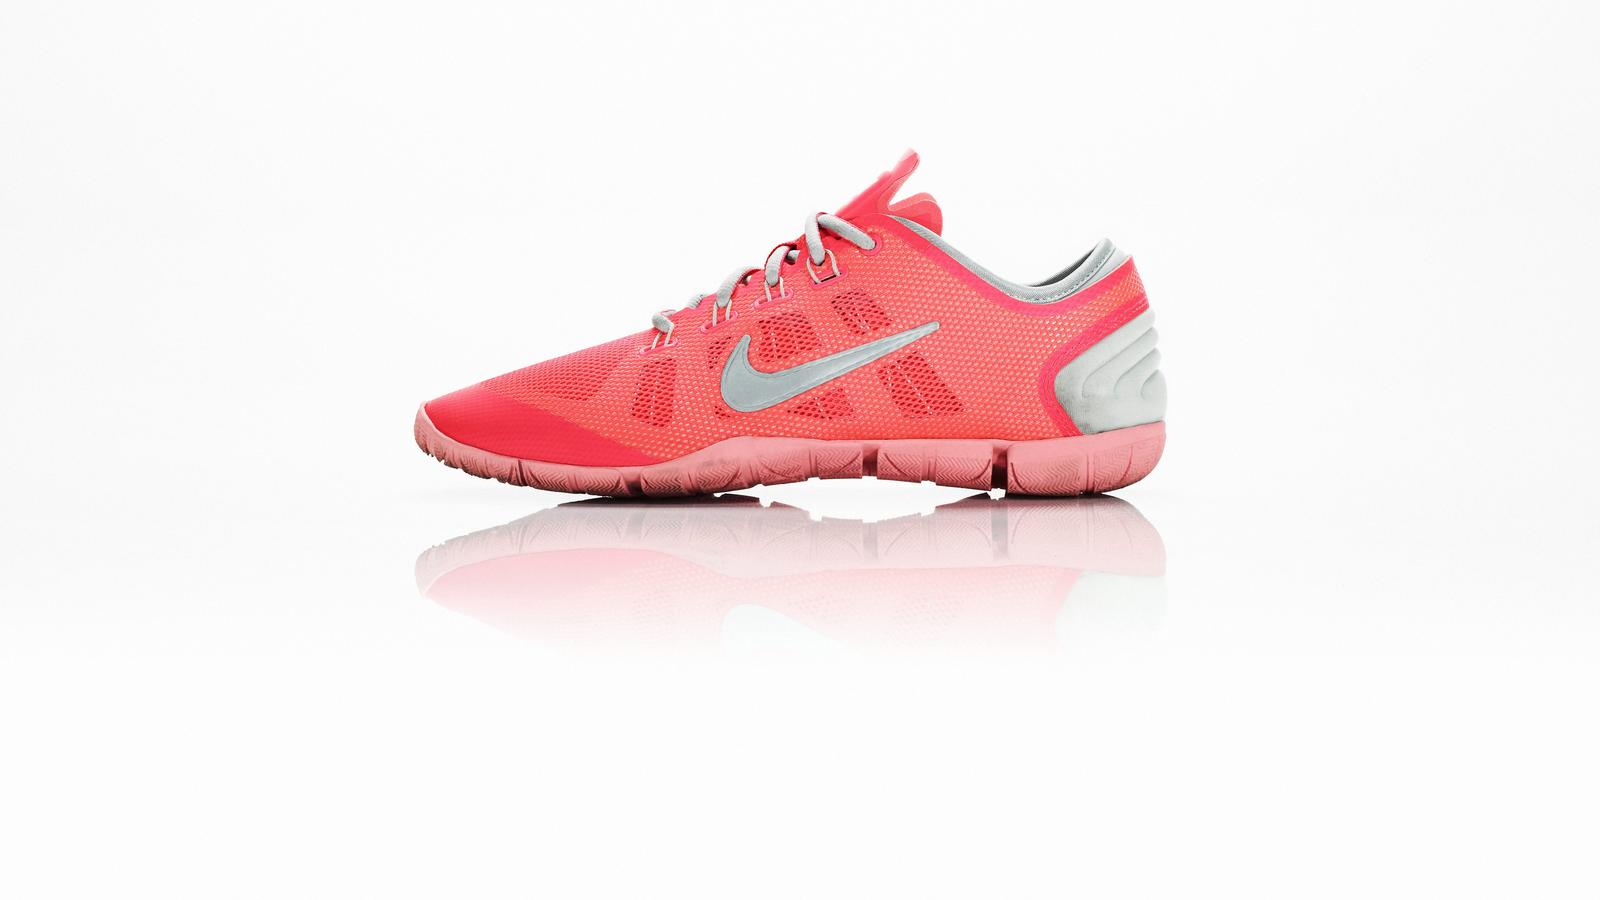 new arrivals d1113 aef7f With high intensity workouts more popular than ever, the all-new Nike Free  Bionic will help women power through the toughest of workouts while looking  as ...